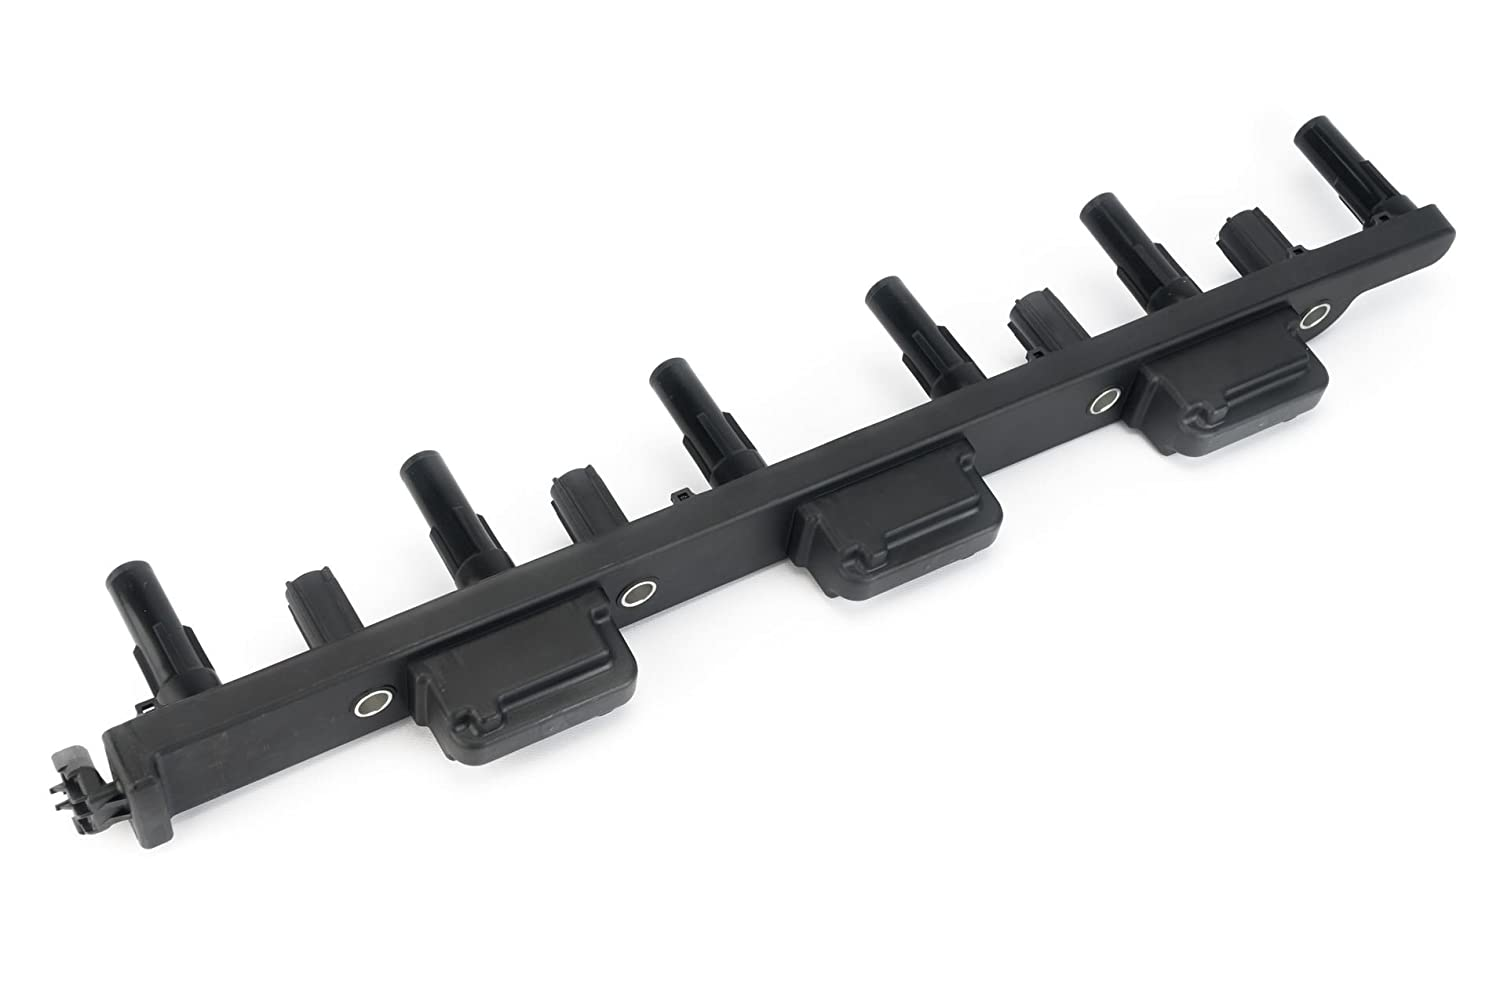 Ignition Coil Pack - Jeep Grand Cherokee 4.0L, Cherokee, Wranger, TJ - Replaces 56041476AB, 56041476AA - Ignition Coil Pack 4.0 Jeep Grand Cherokee Model Years 2000, 2001, 2002, 2003 , 2004 and More Image